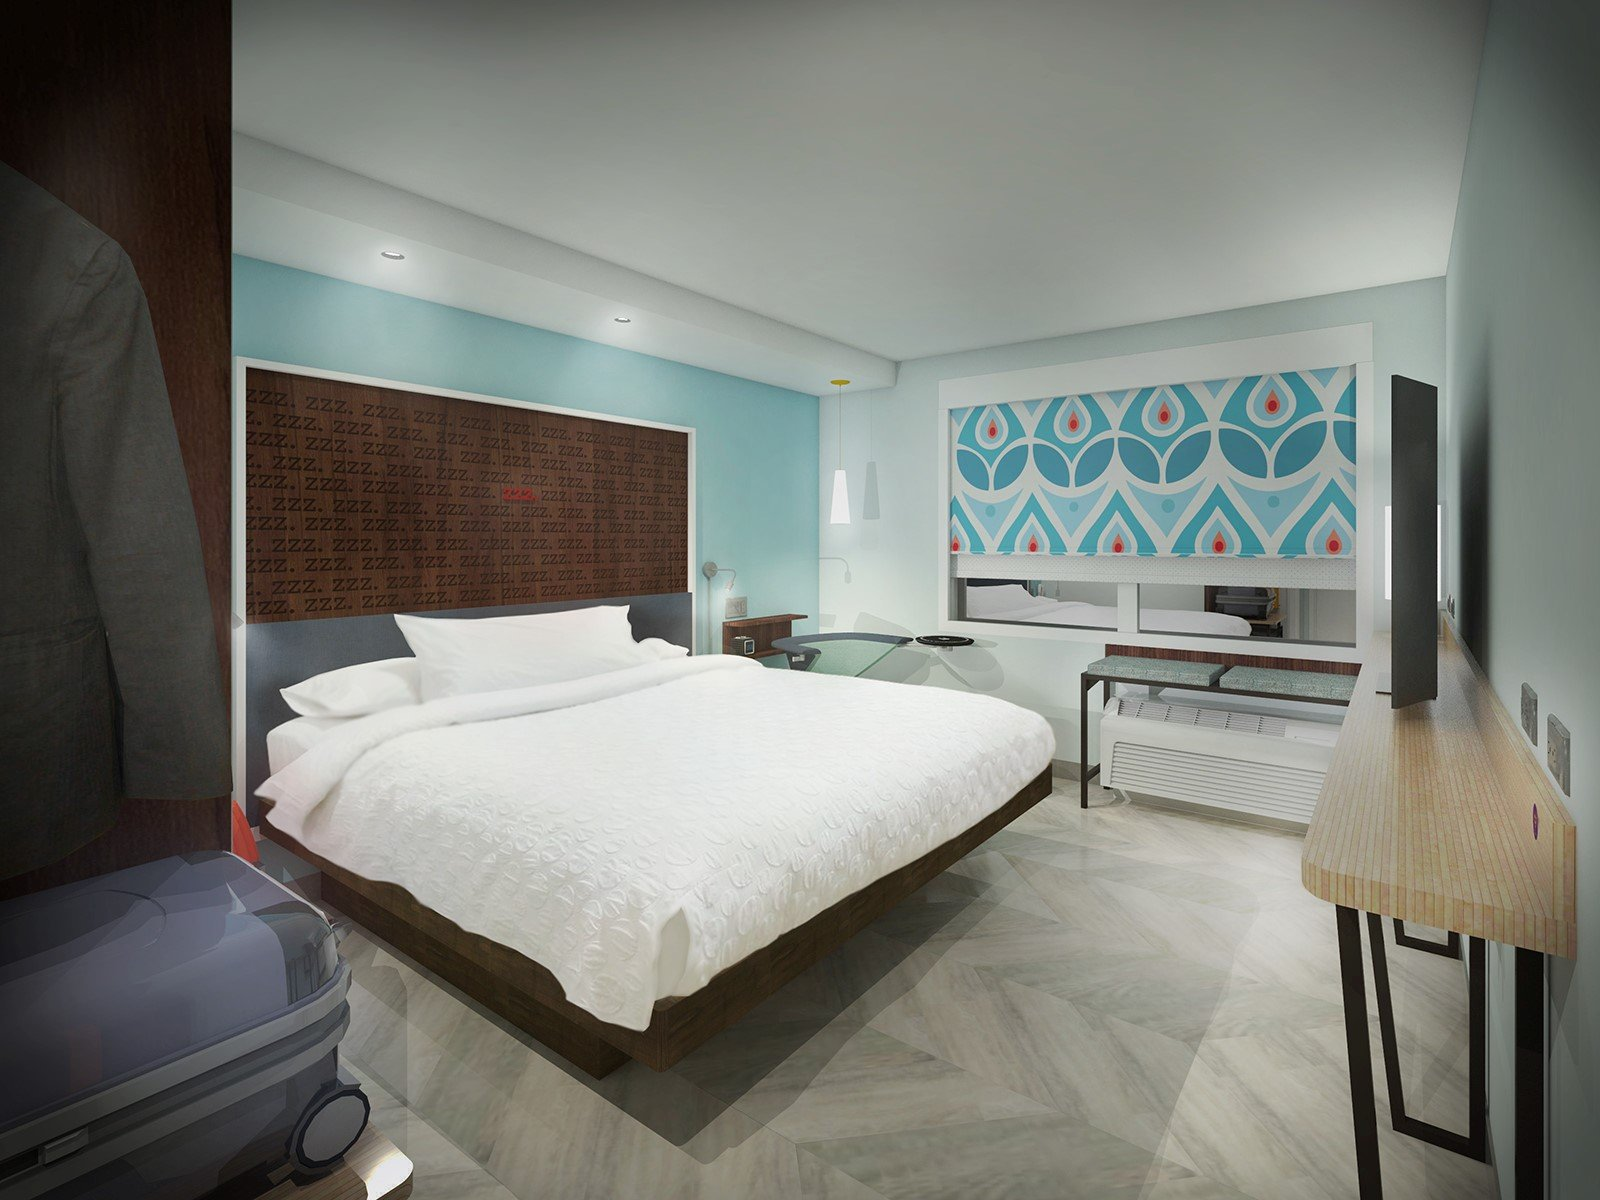 Hilton chooses atlanta area for first tru hotel hotel for What hotel chains does hilton own